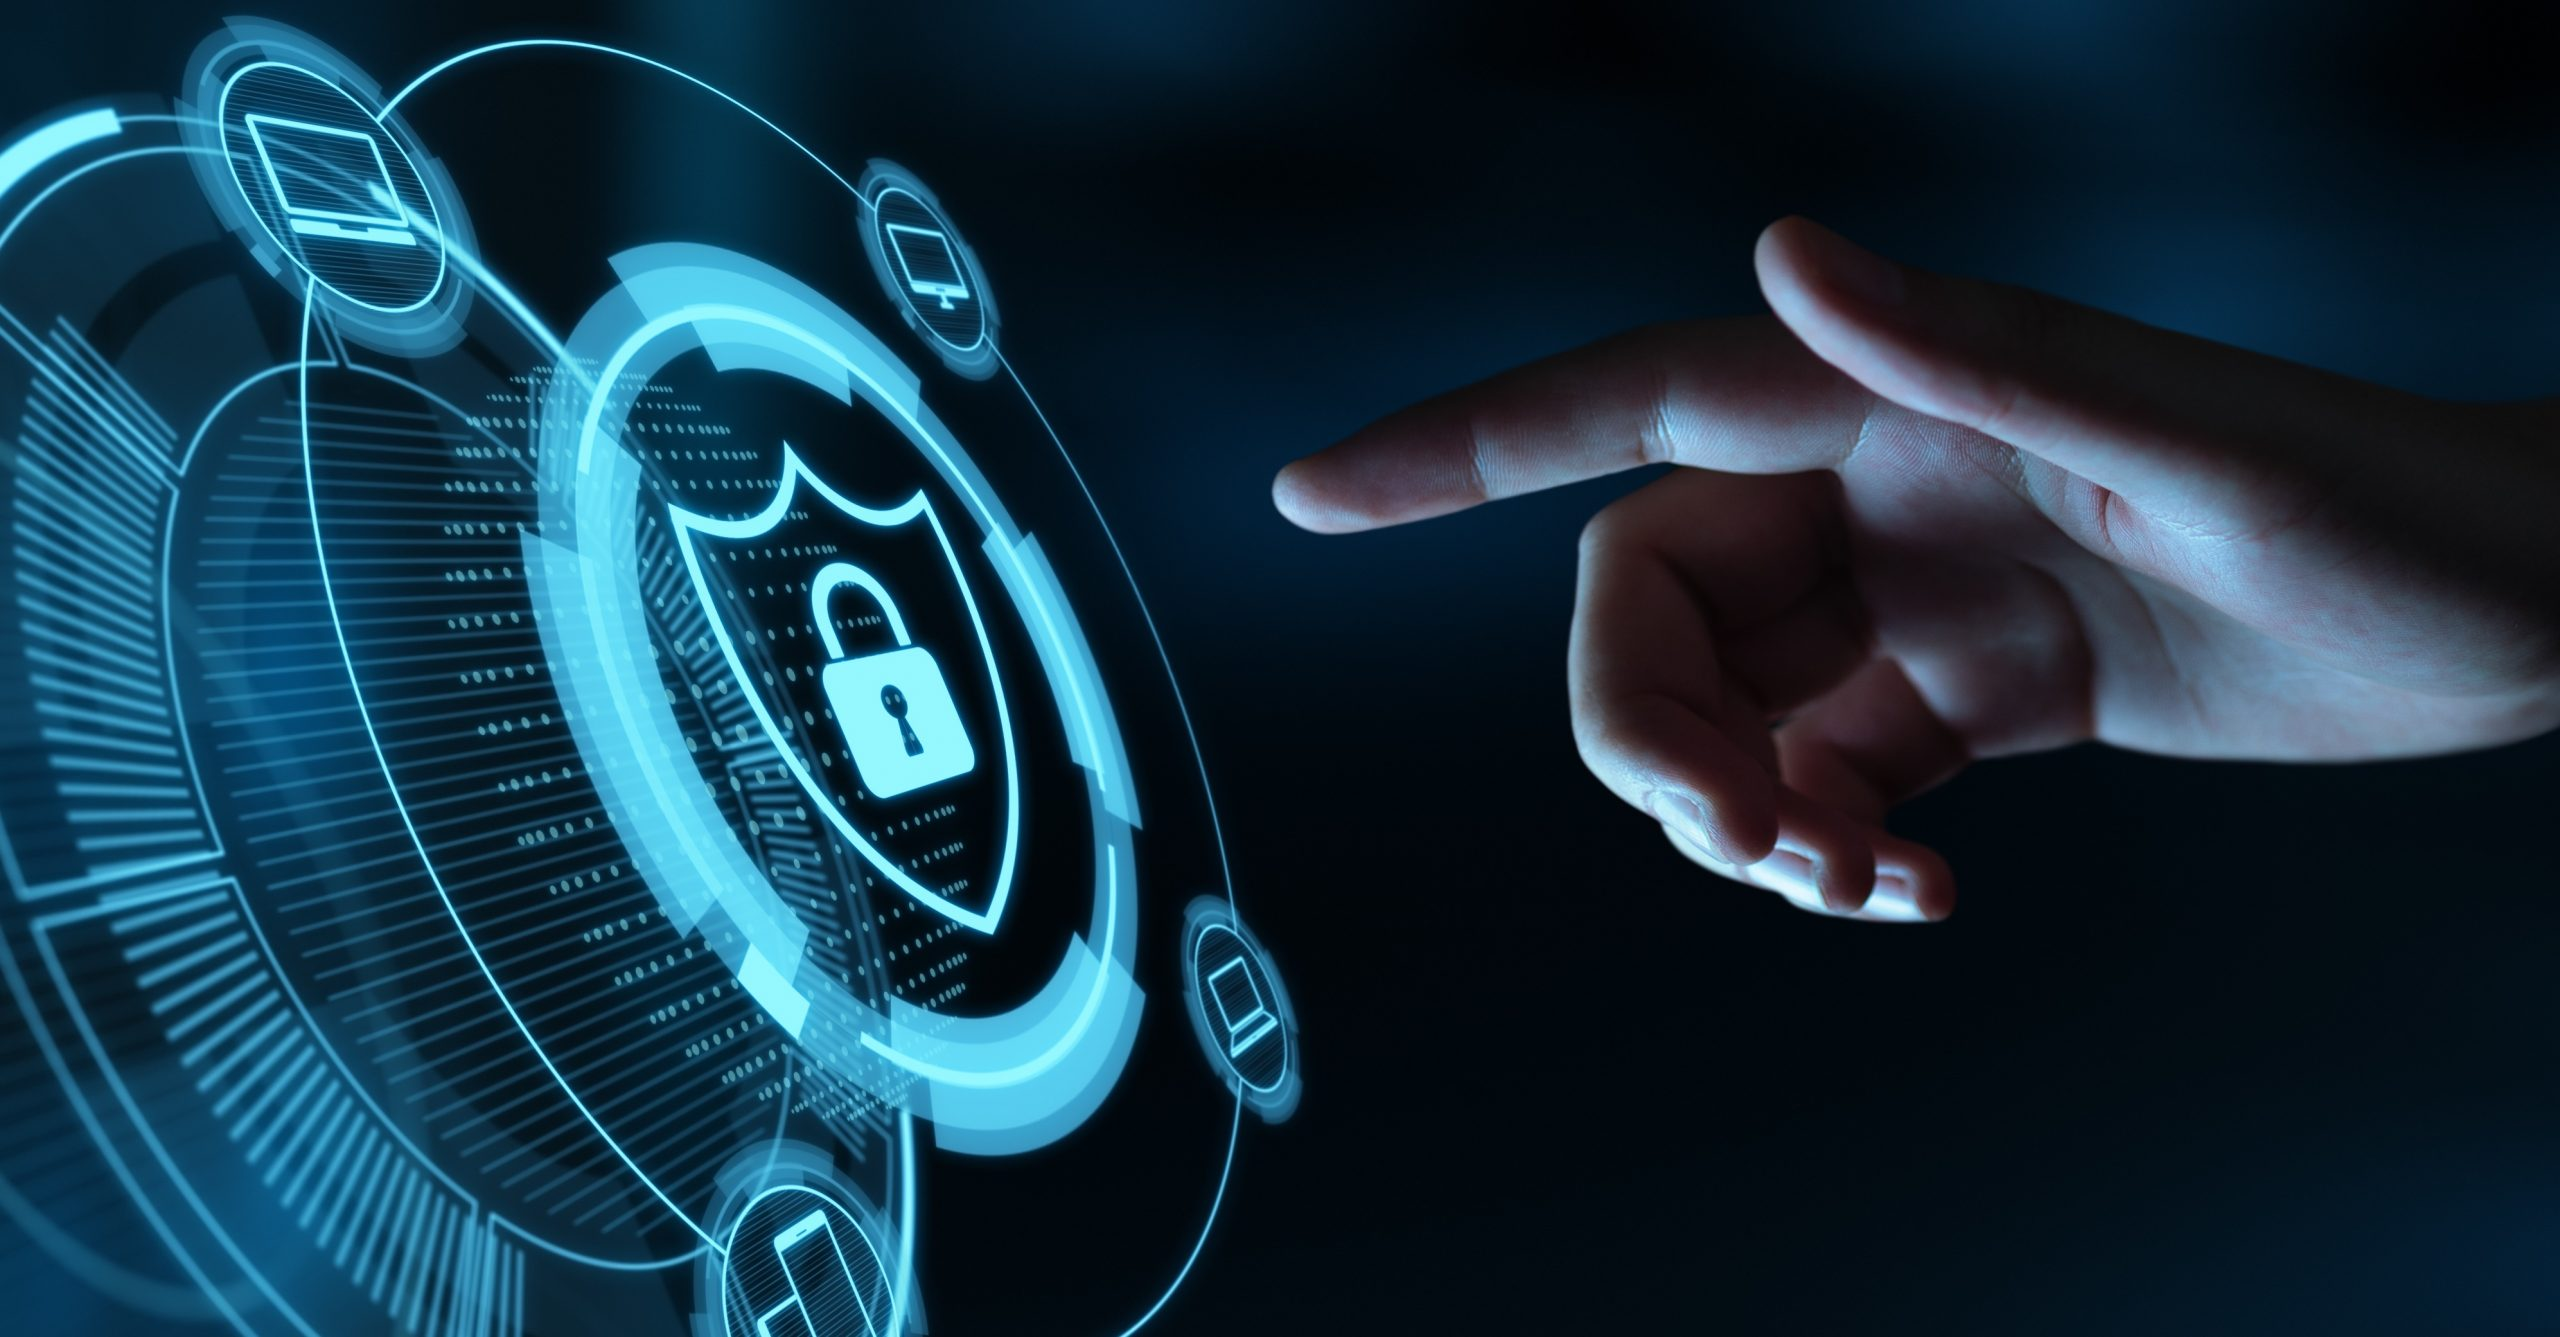 Globe partners with Secureworks to help businesses secure their digital transformation